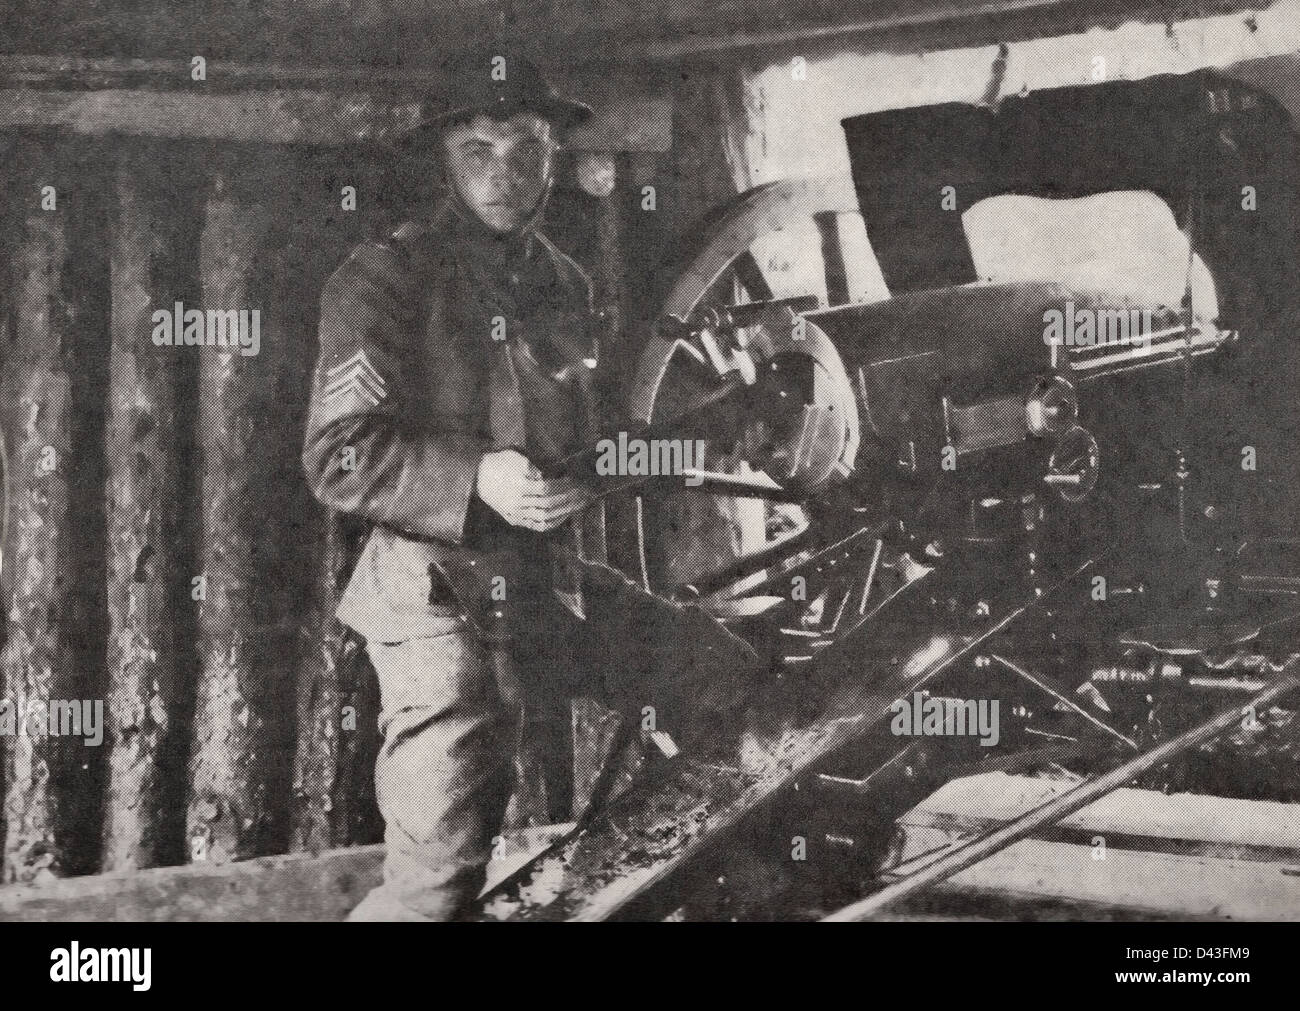 American soldier loading gun in France during World War I, 1917 - Stock Image